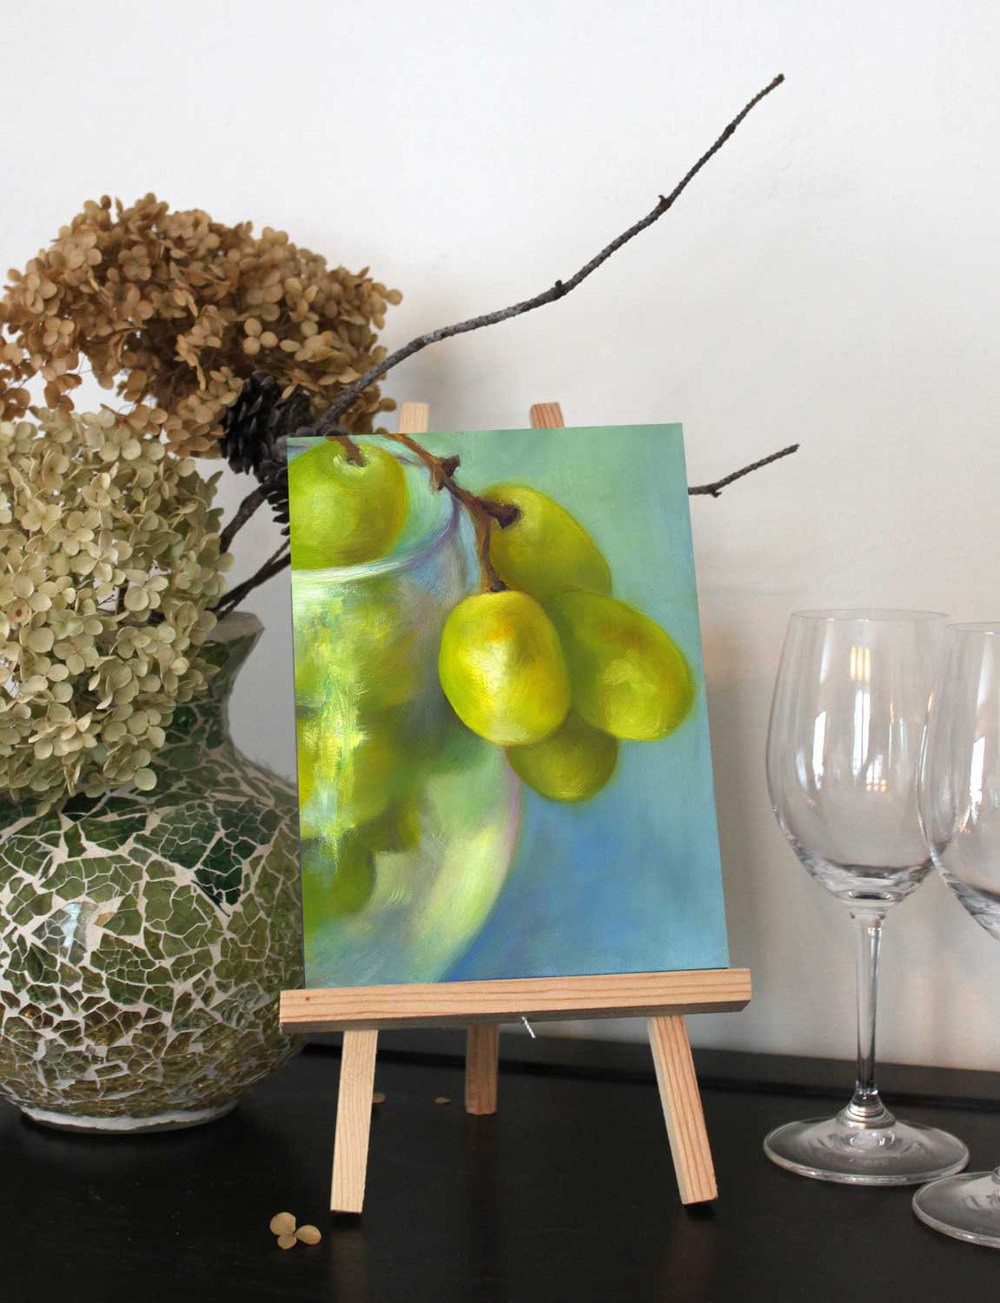 chardonnay-cluster-grapes-oil-still-life.jpg